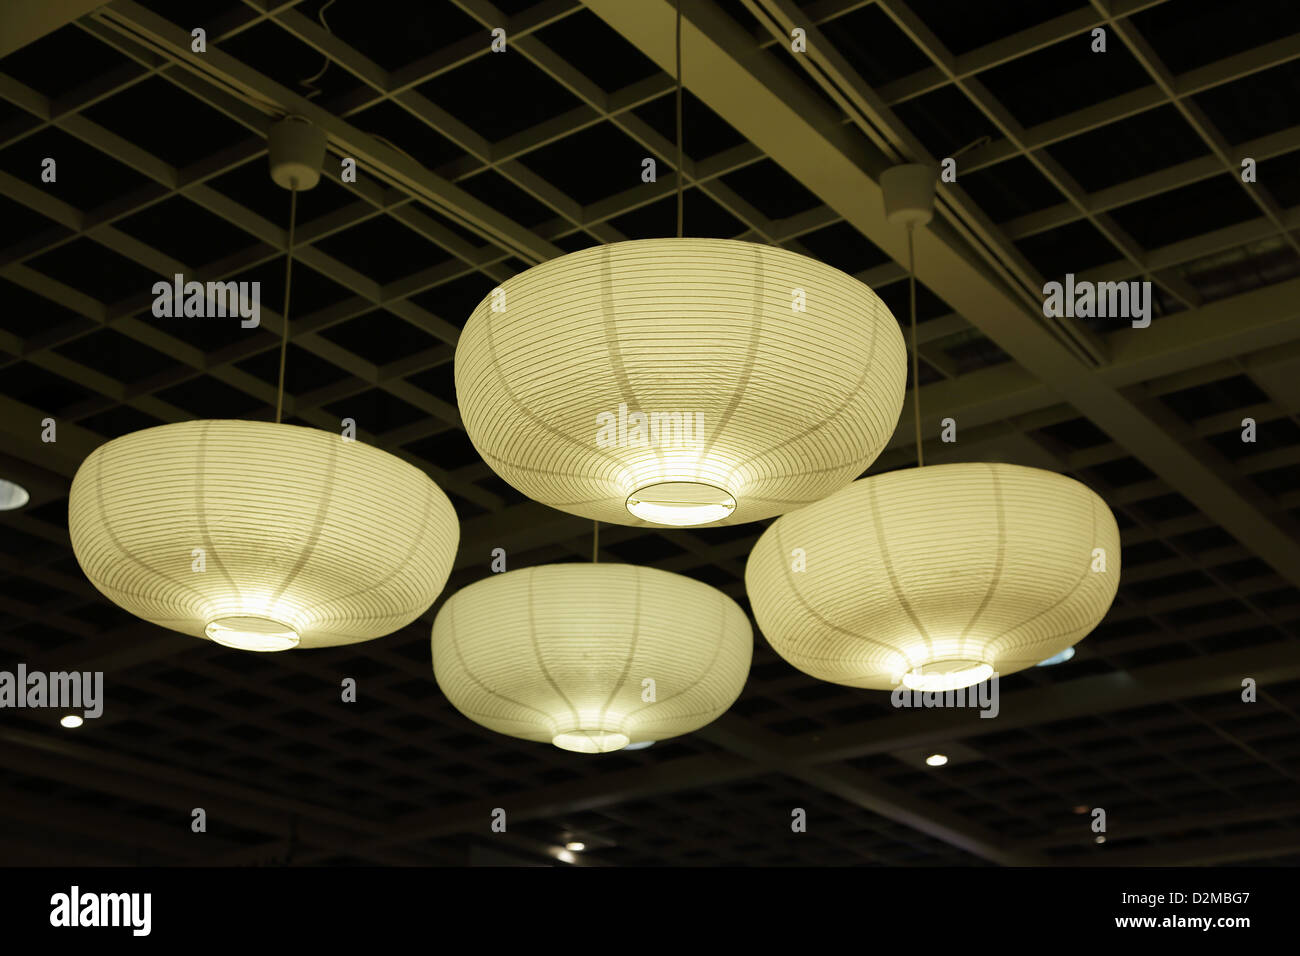 Paper lamp shades stock photos paper lamp shades stock images alamy ceiling lights with paper lamp shades stock image mozeypictures Gallery